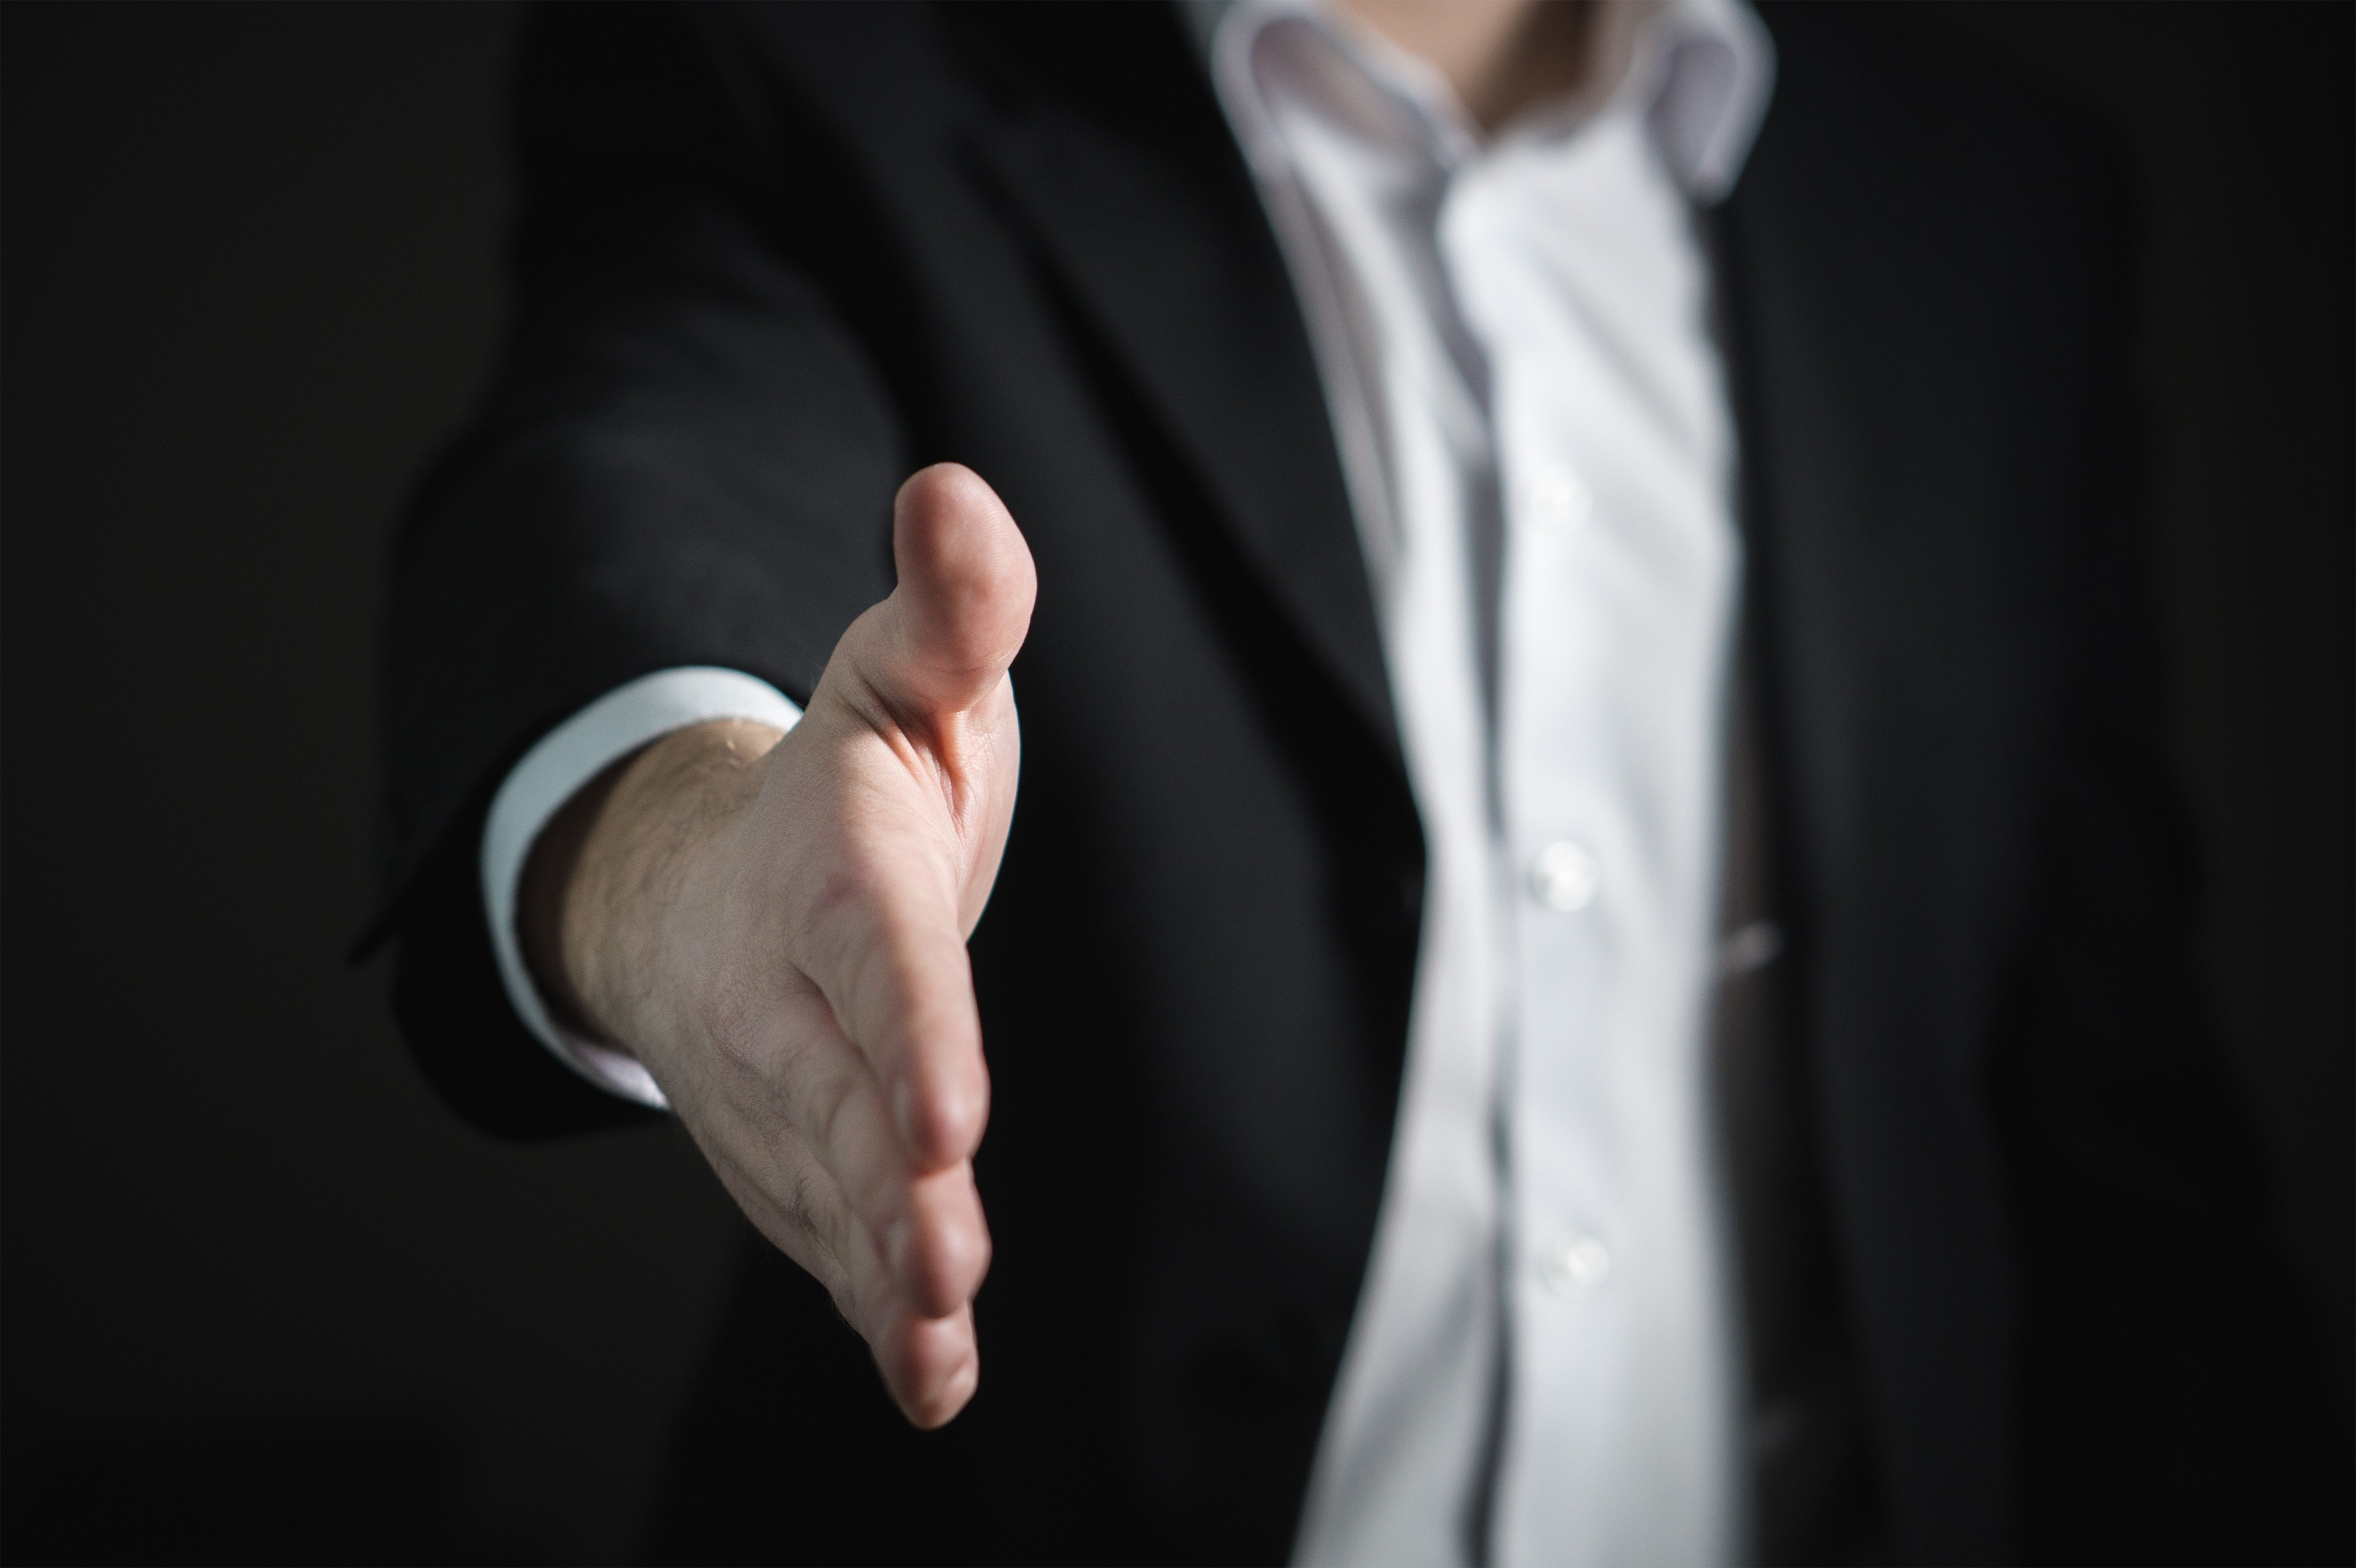 A close up of a man in a suit extending his arm reaching out to shake your hand